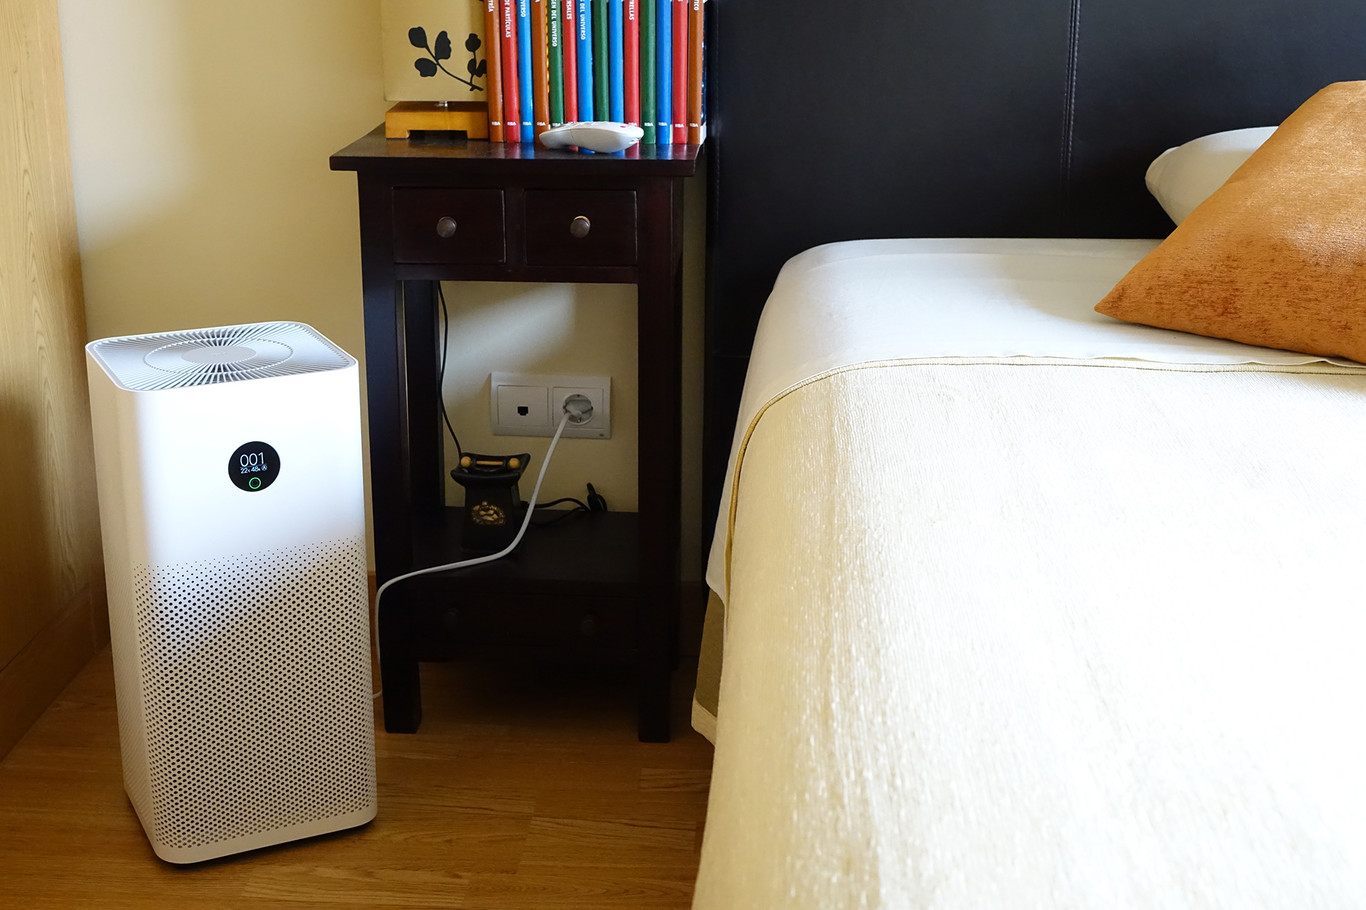 Xiaomi Mi Air Purifier 3H, review: Xiaomi's most advanced air purifier is controlled from mobile